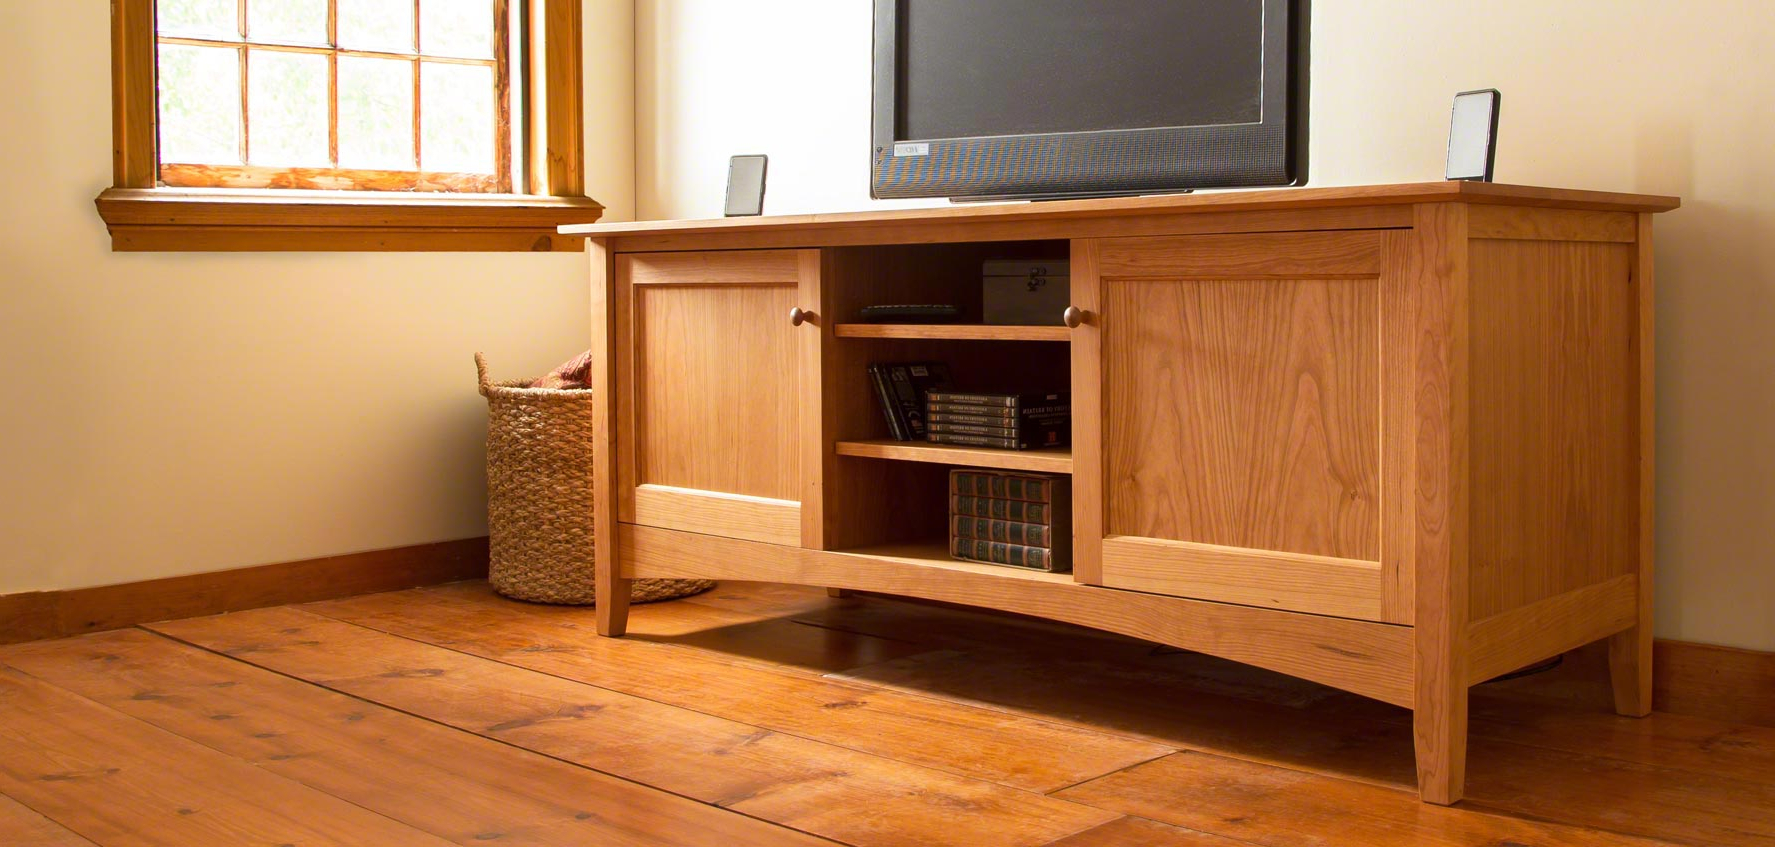 2017 Handcrafted Wood Tv Stands & Media Consoles – Vermont Woods Studios Pertaining To Wood Tv Armoire Stands (View 3 of 20)